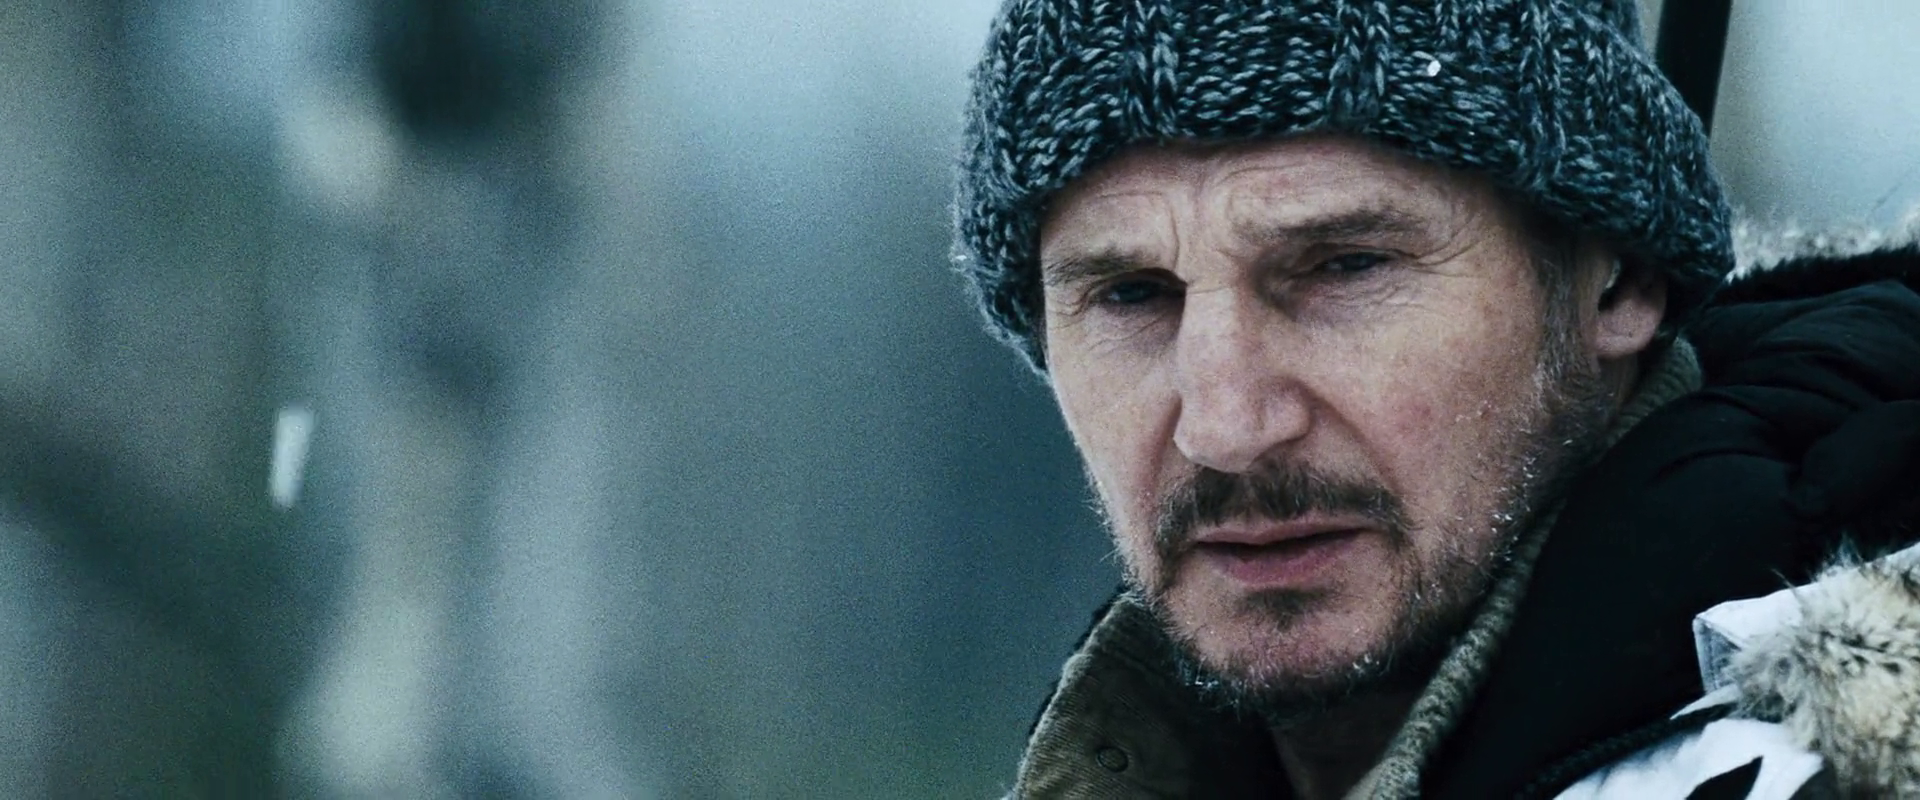 The Grey - Movie Review - Liam Neeson - A Meditation On